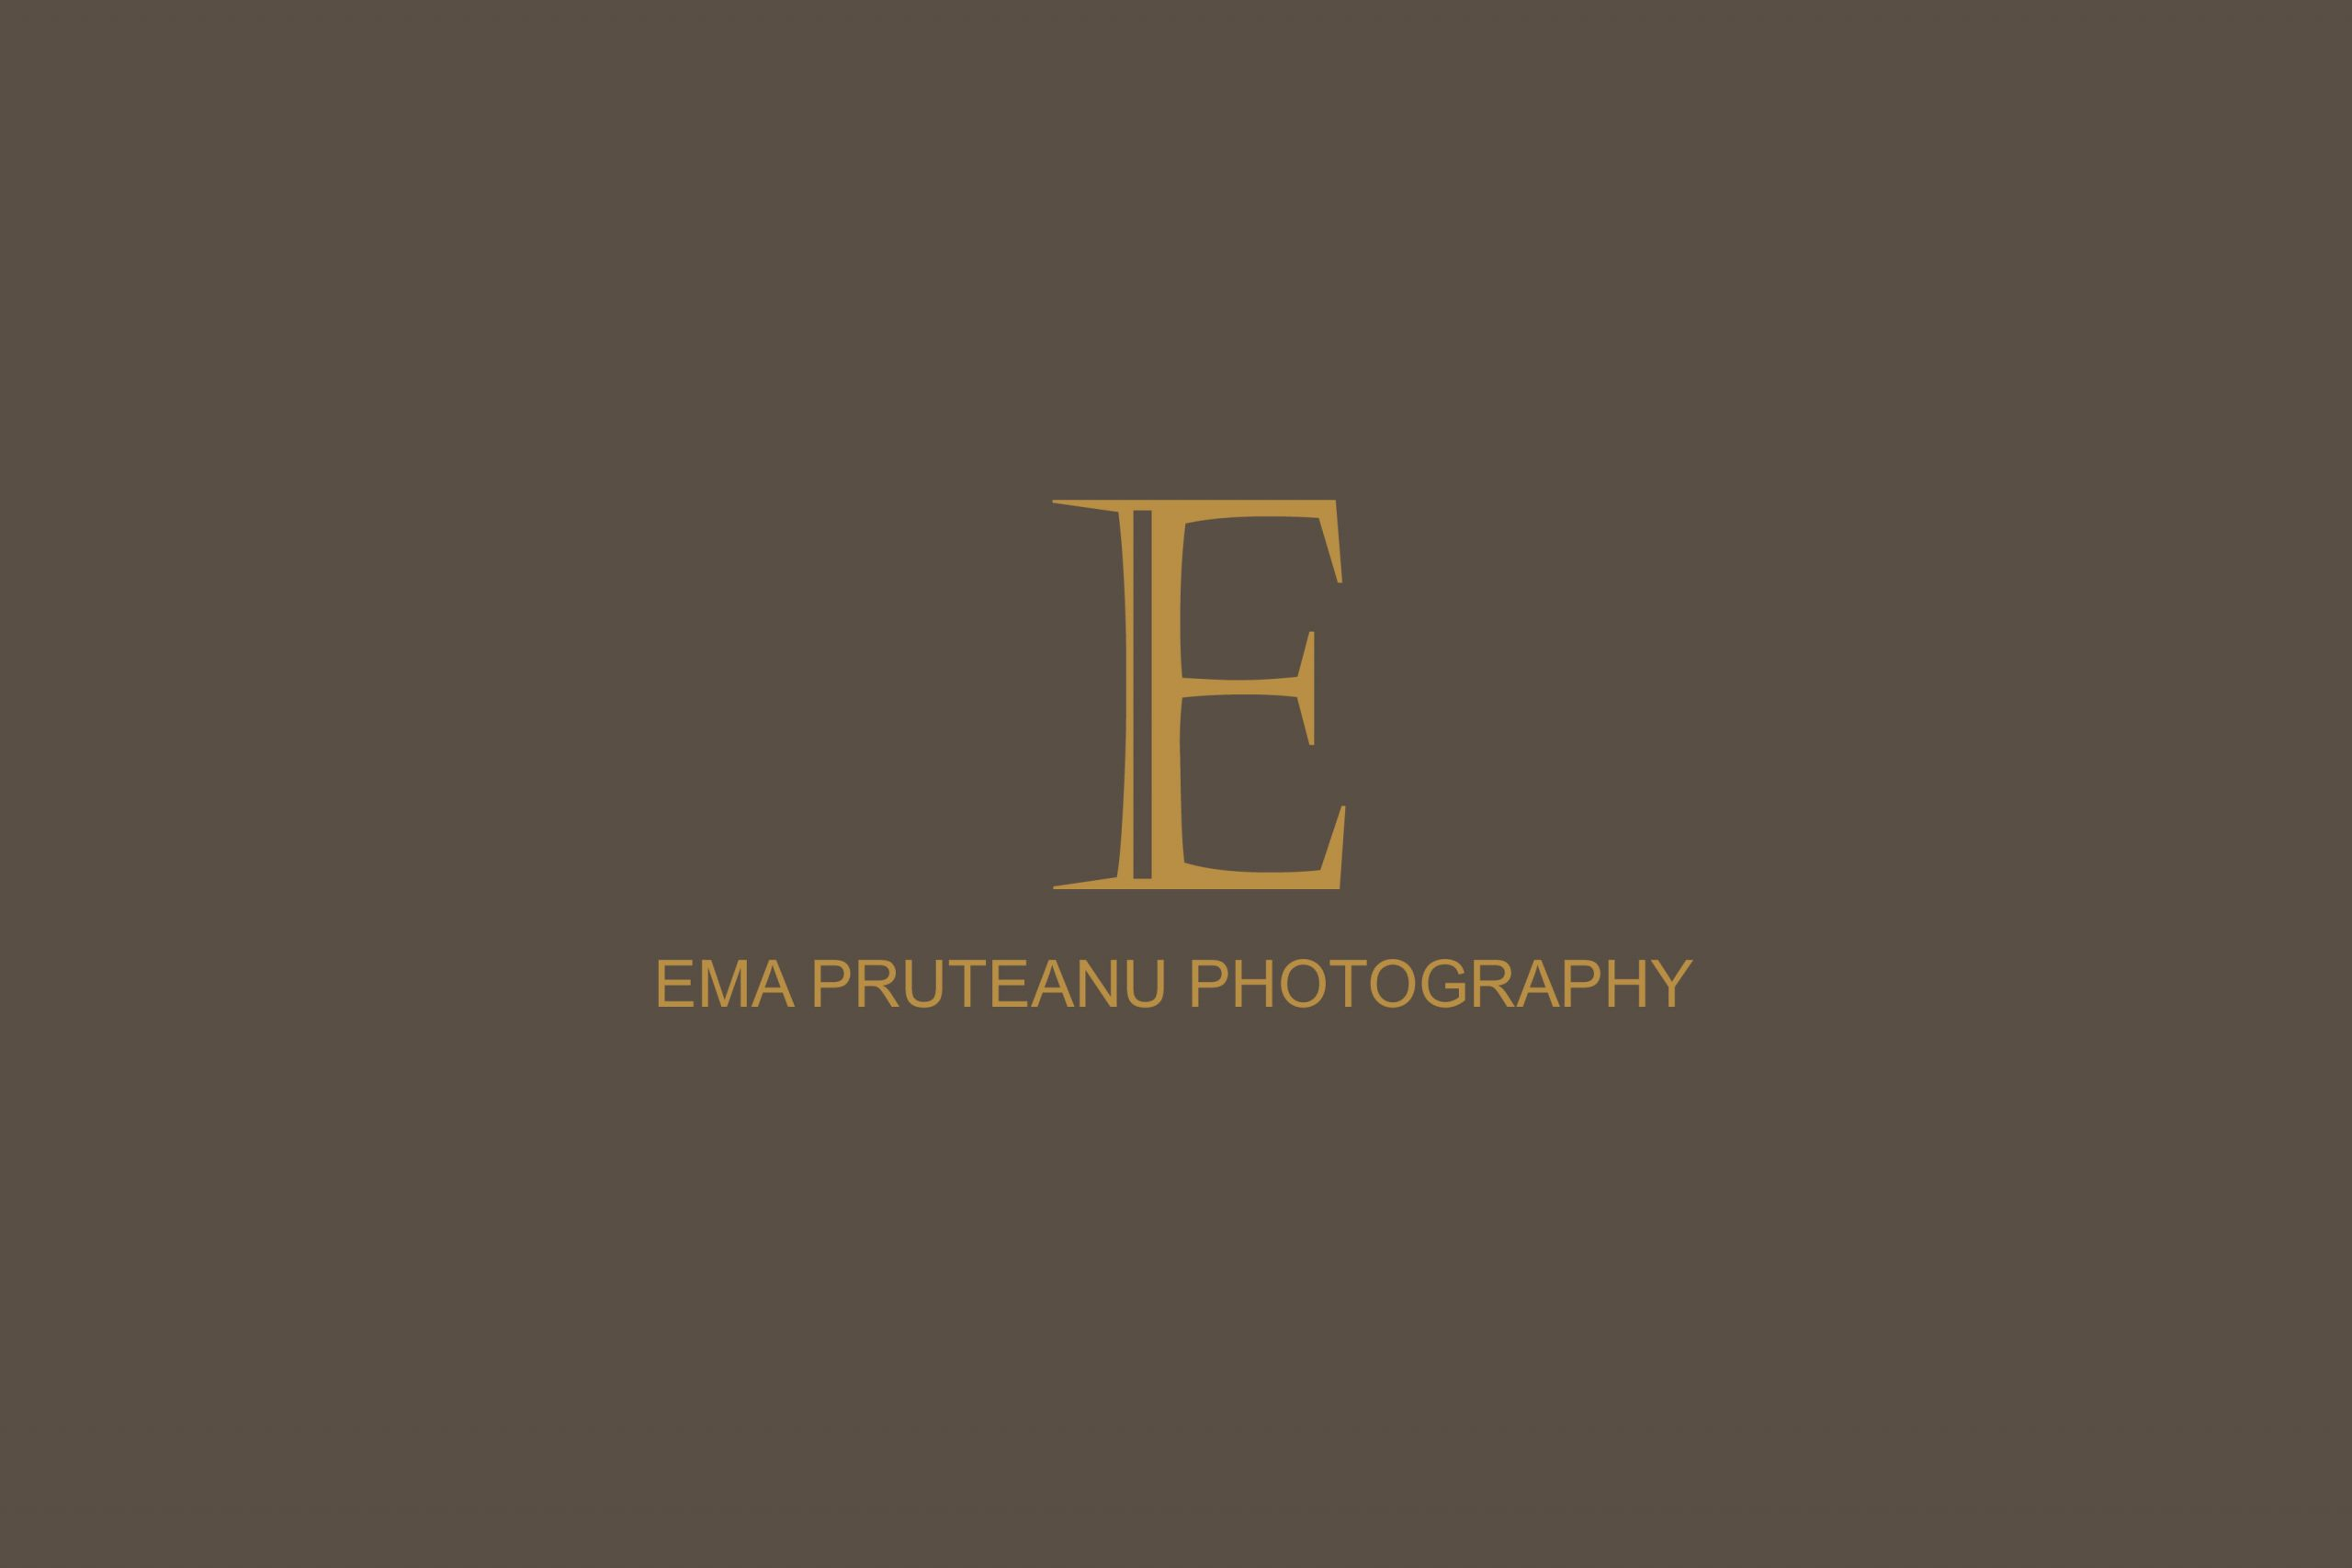 Ema pruteanu Photography